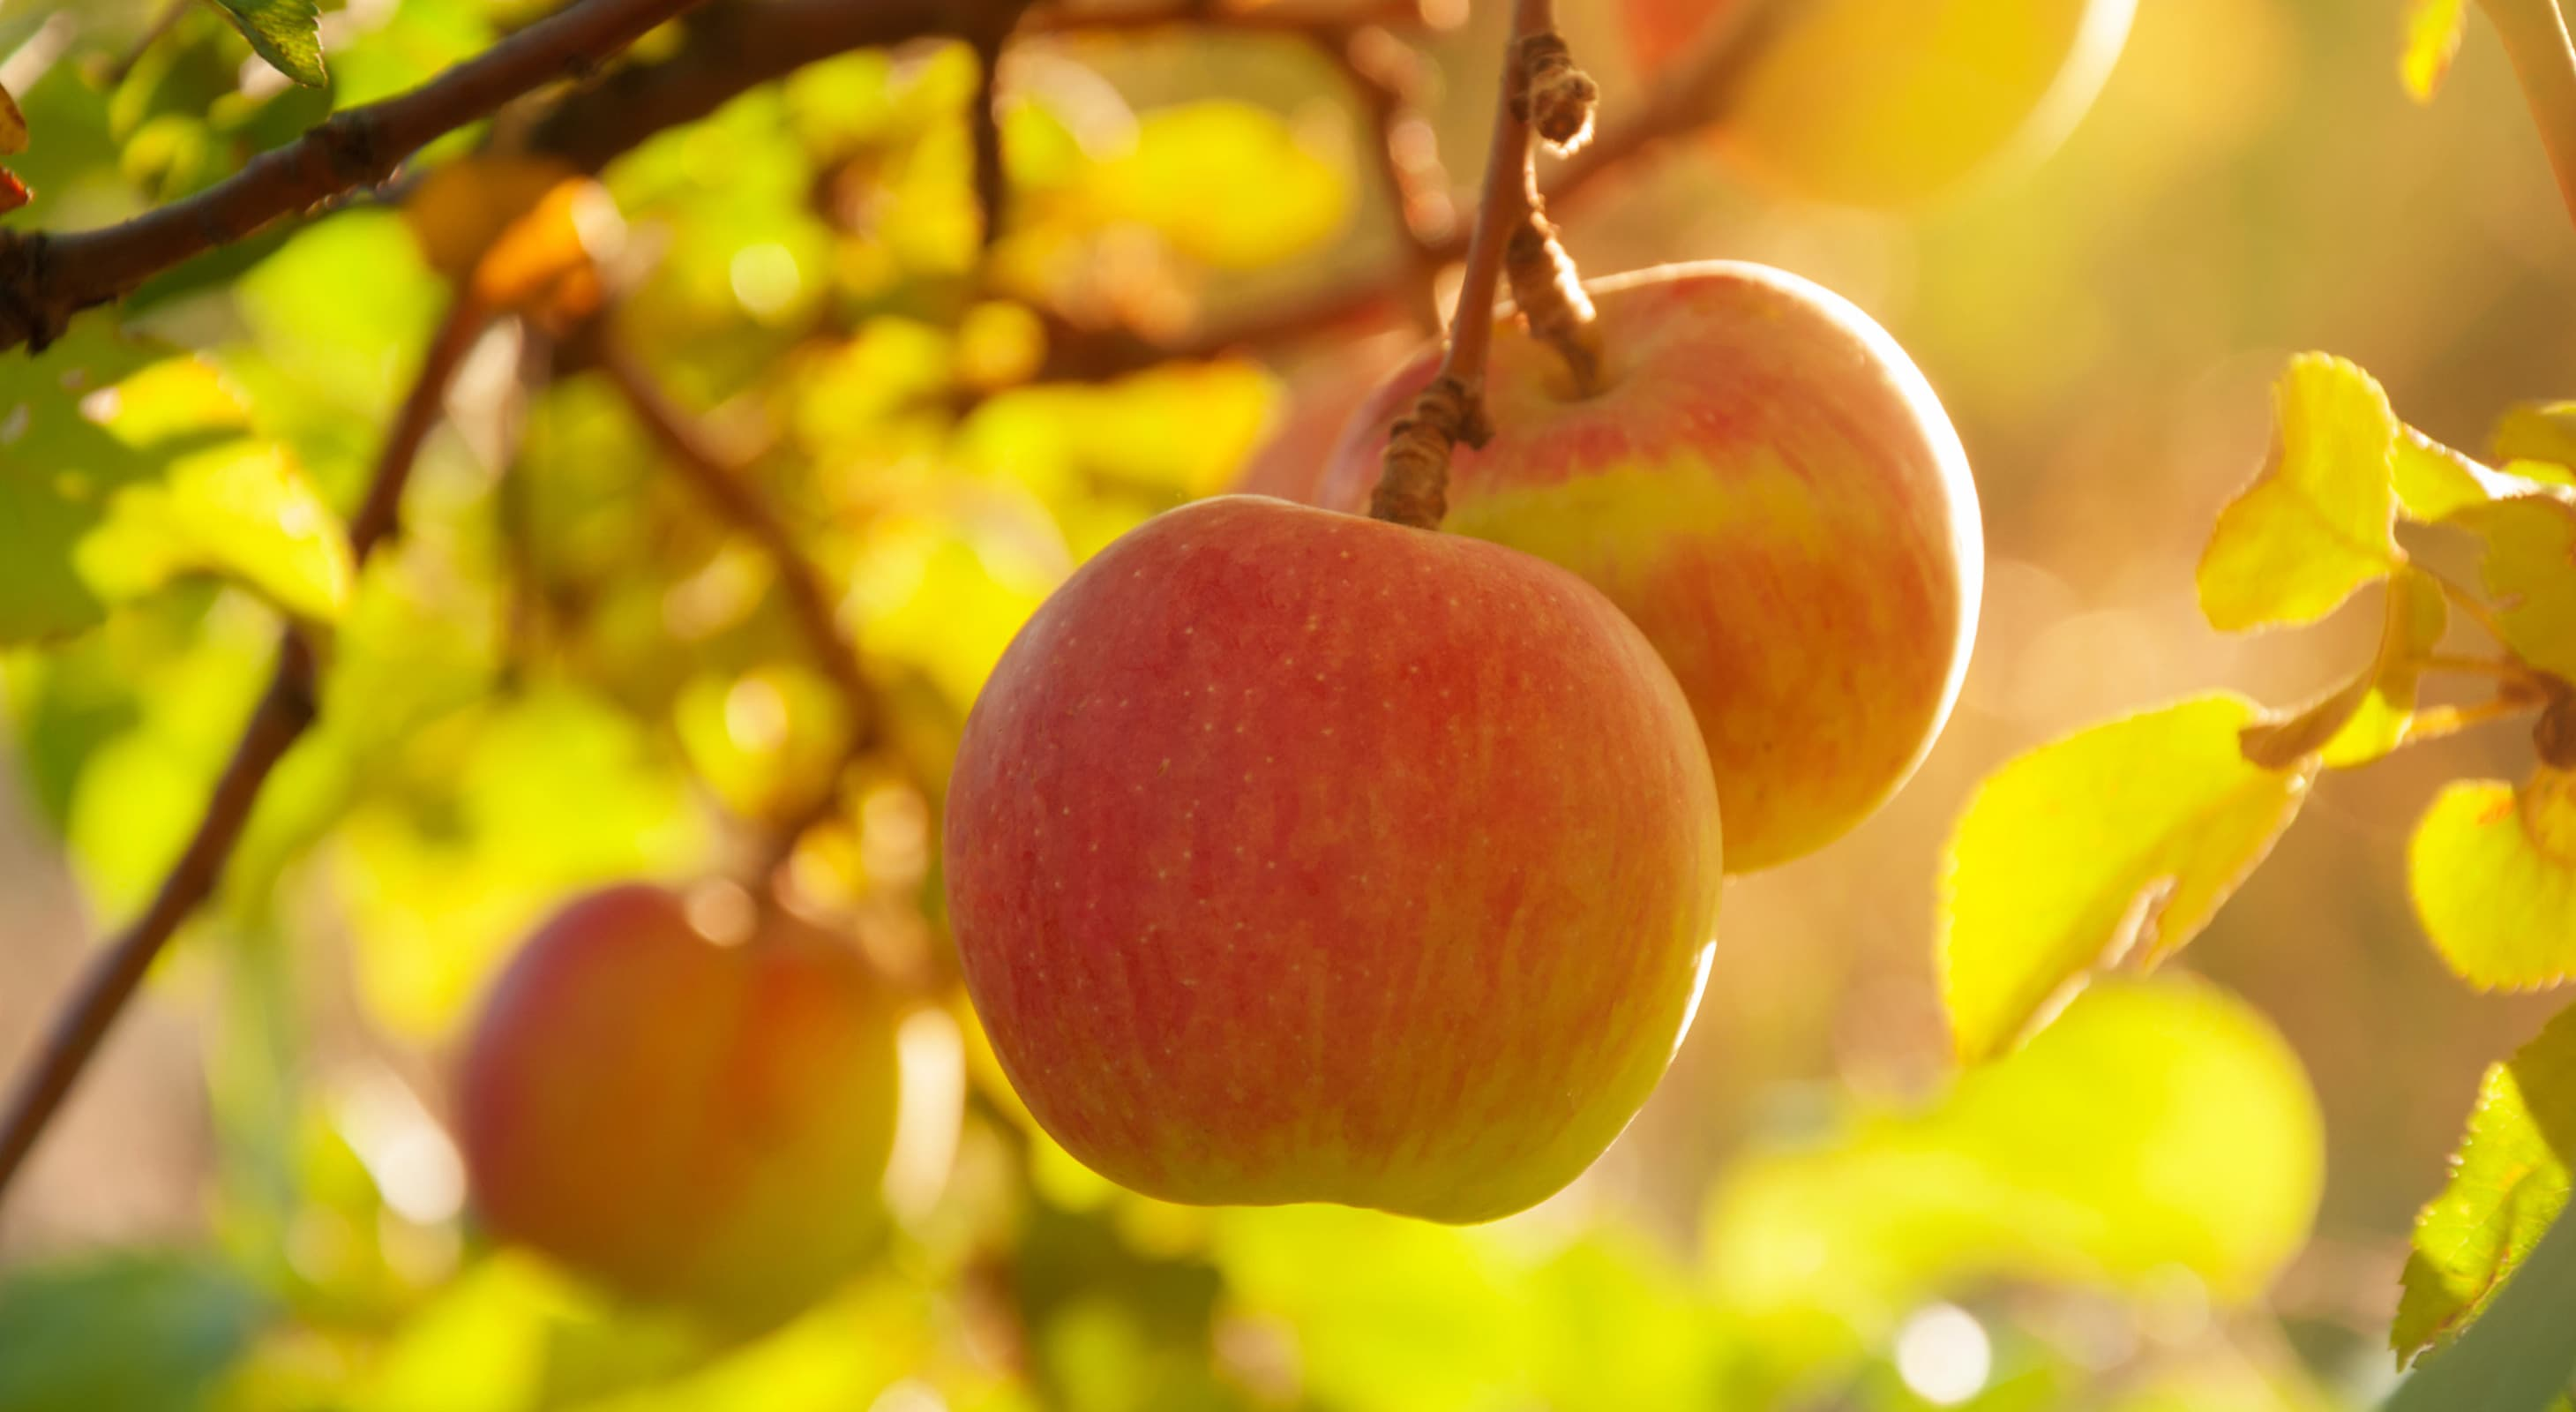 apples in a tree at an orchard